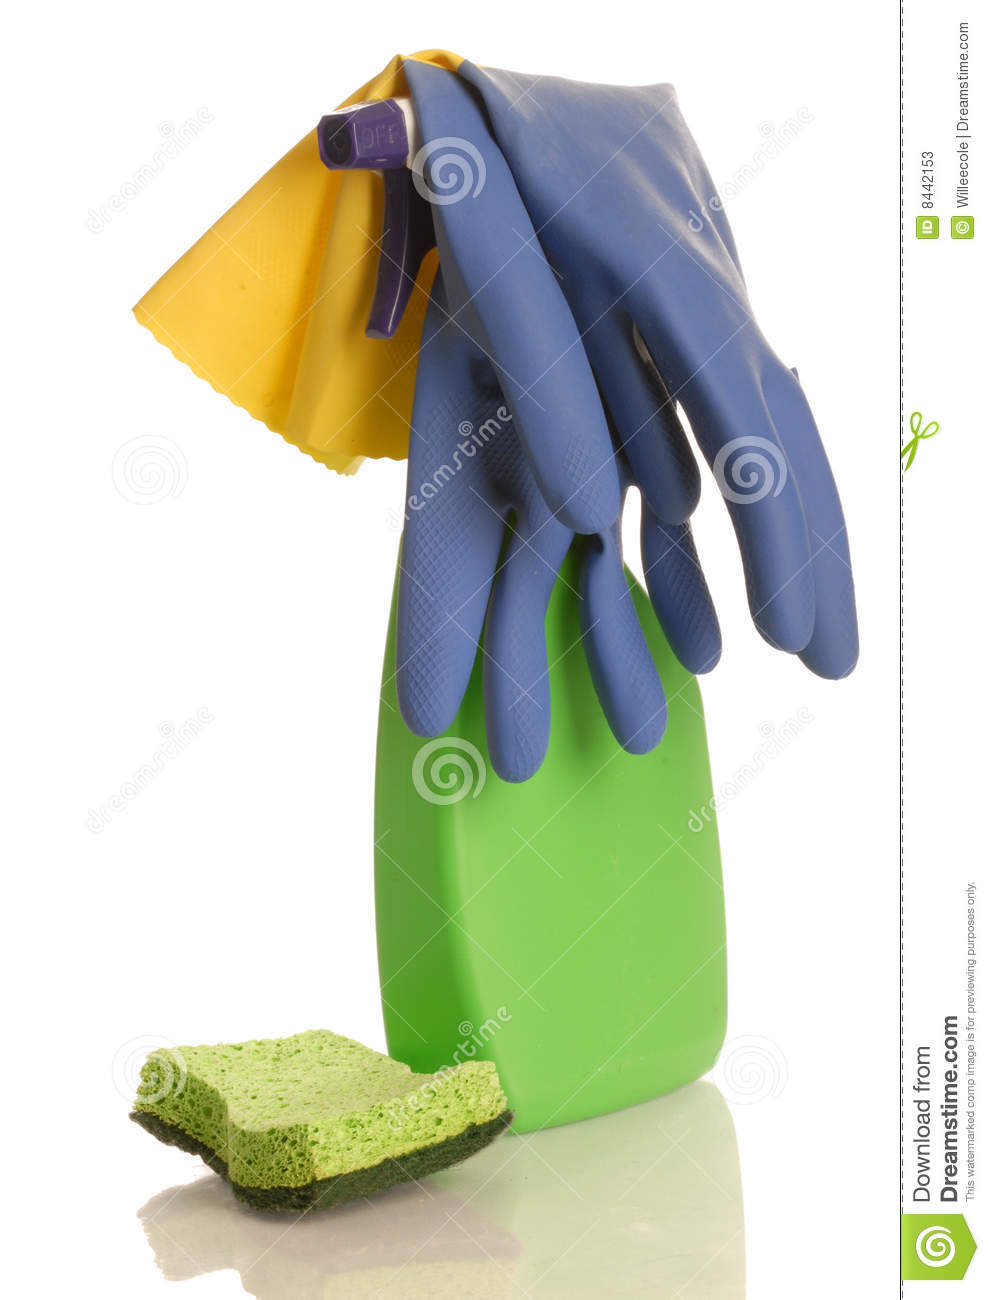 Household cleaner and gloves